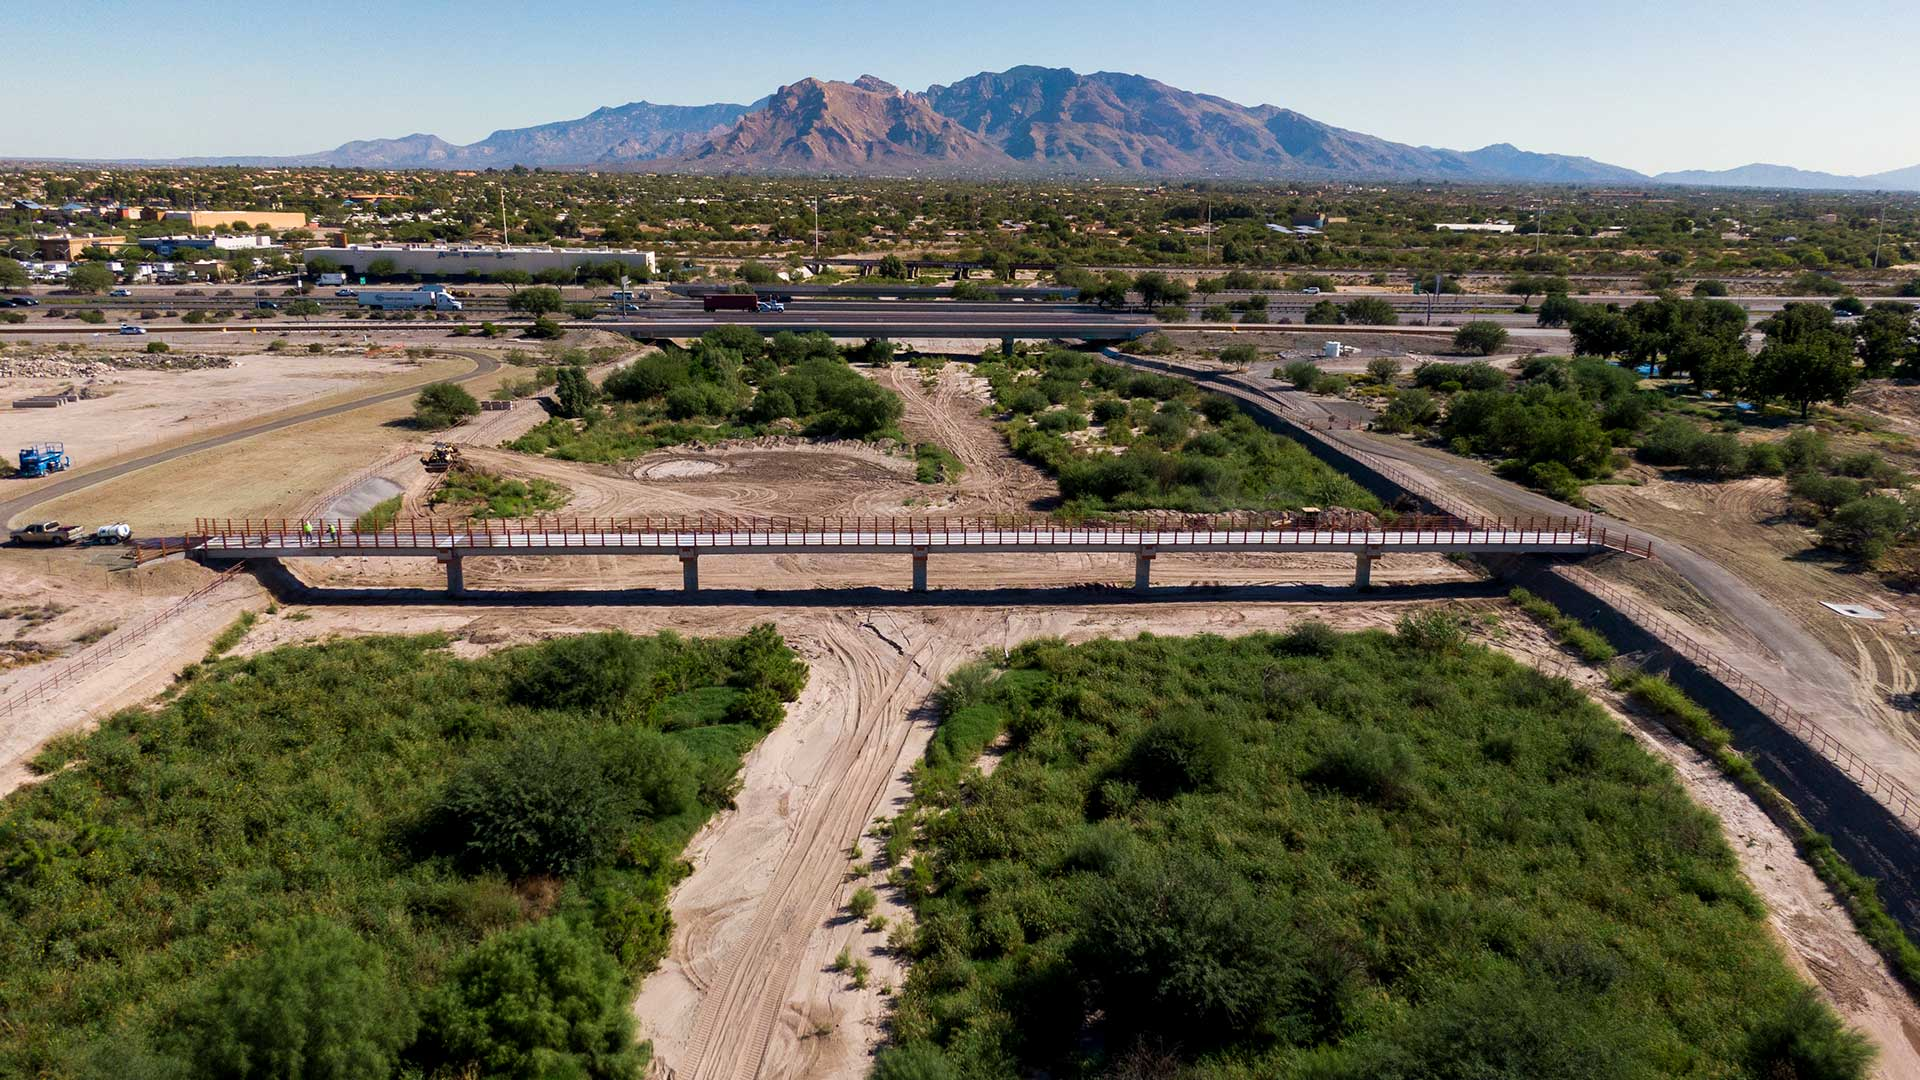 Pima County's El Corazon project links the Santa Cruz and Rillito River parks.